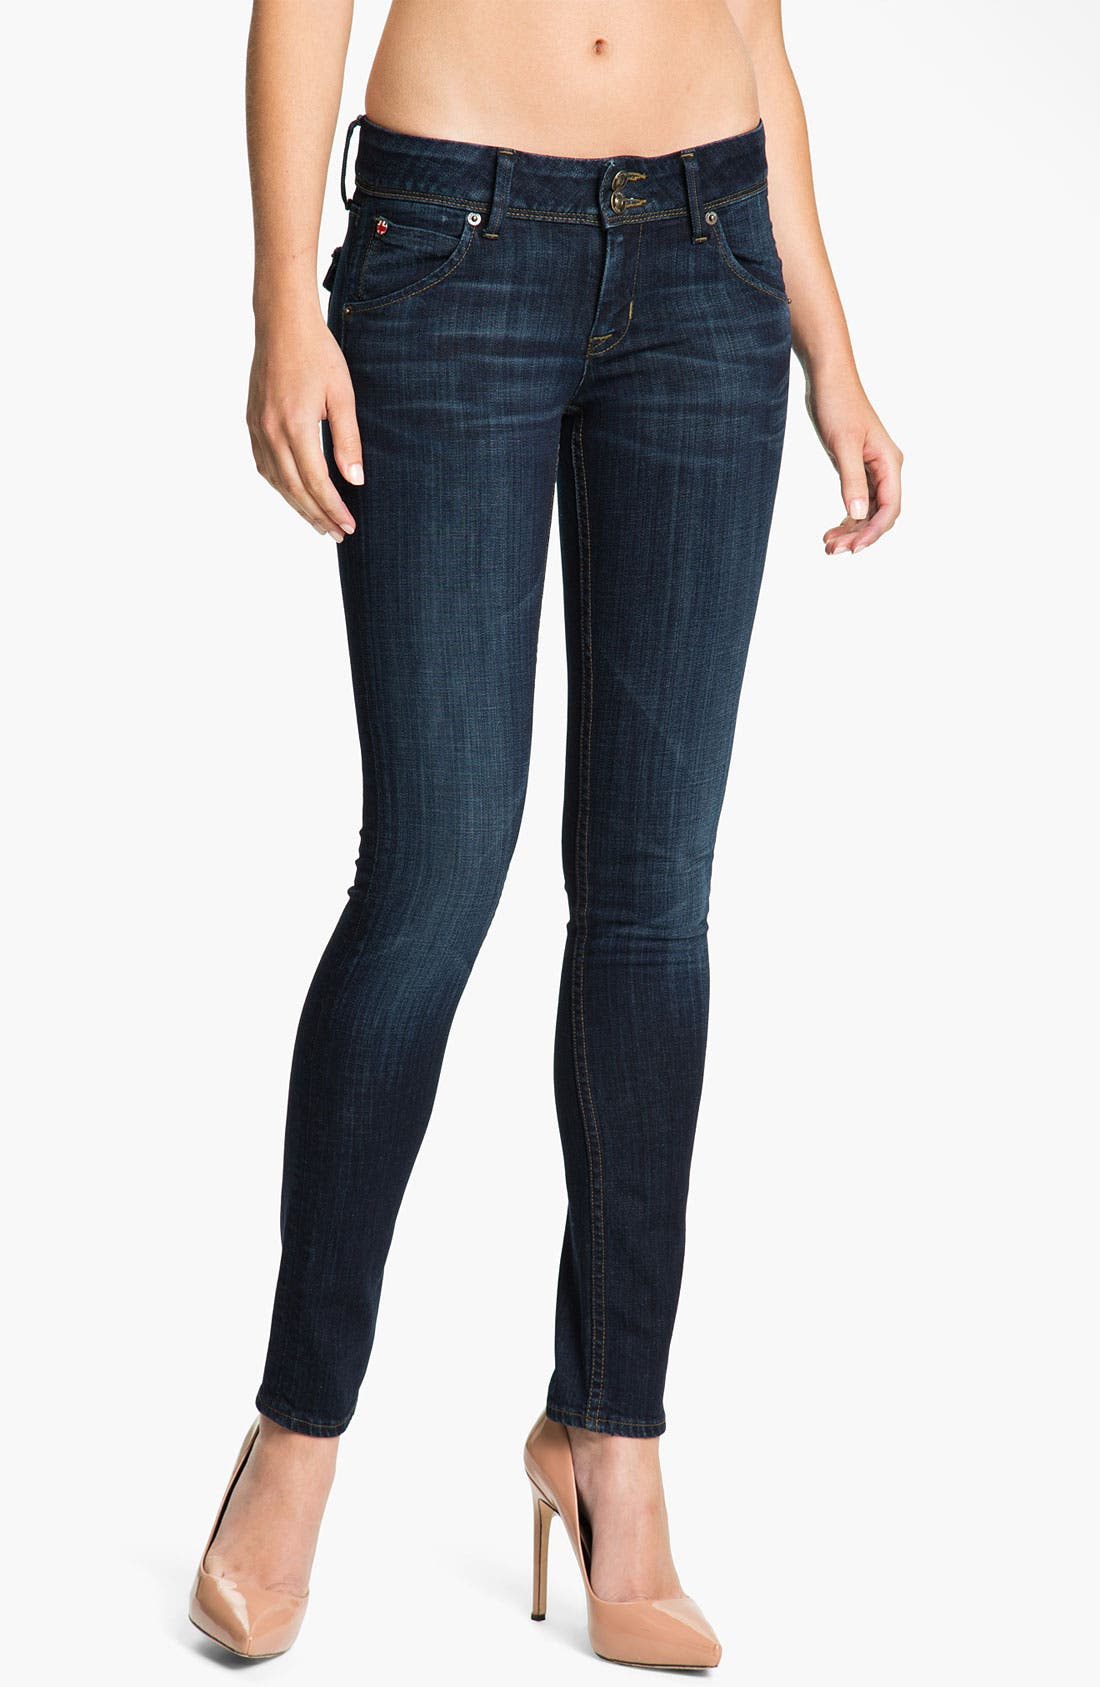 Main Image - Hudson Jeans 'Collin' Skinny Jeans (Belfast)